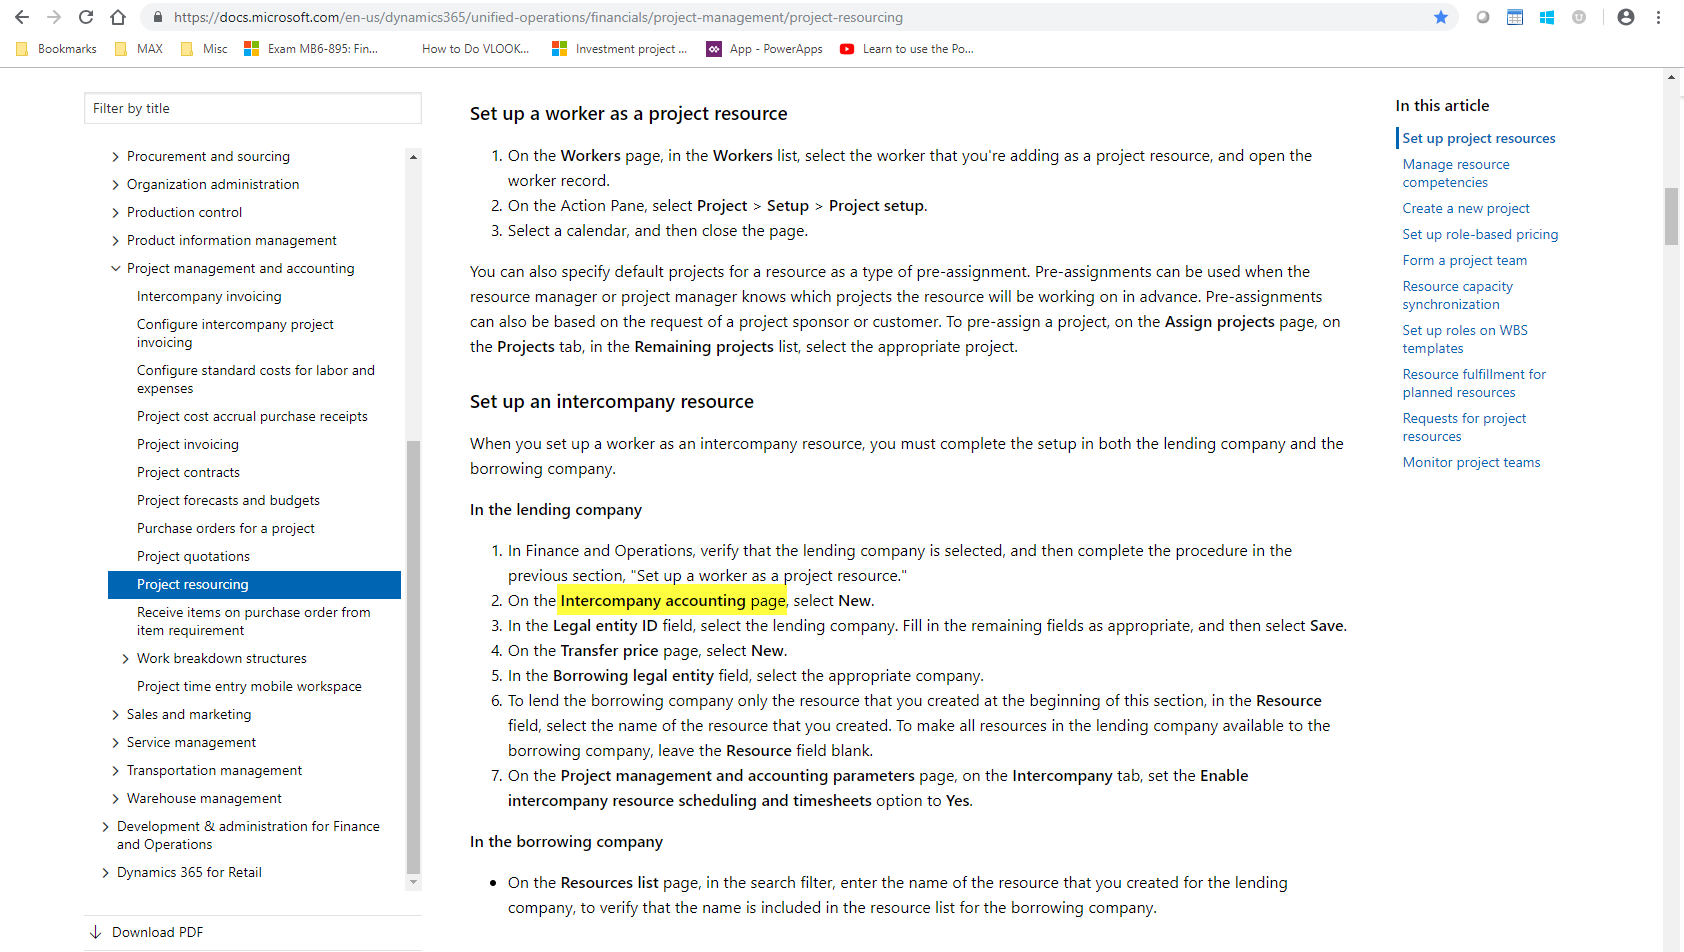 Intercompany accounting page - Dynamics 365 for Finance and